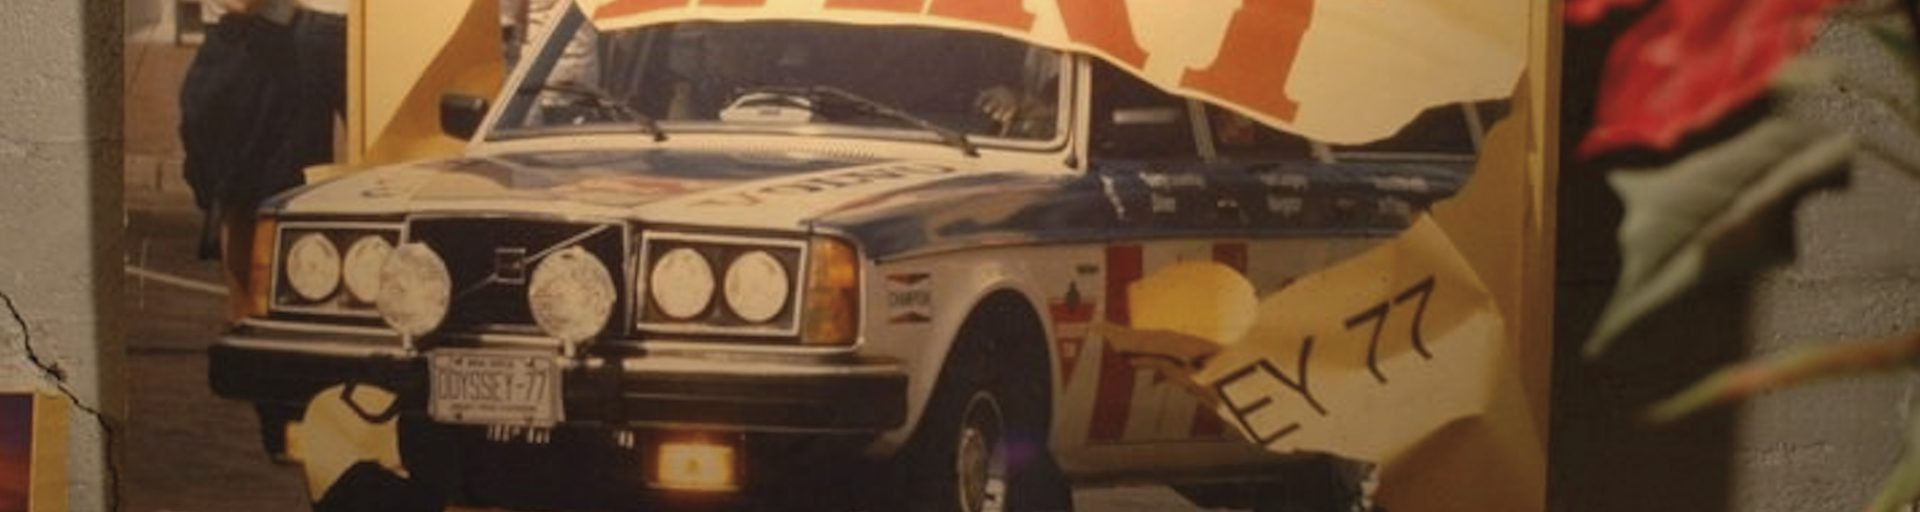 Volvo_245DL_Sowerby_Langley_world_record_1980_Blog